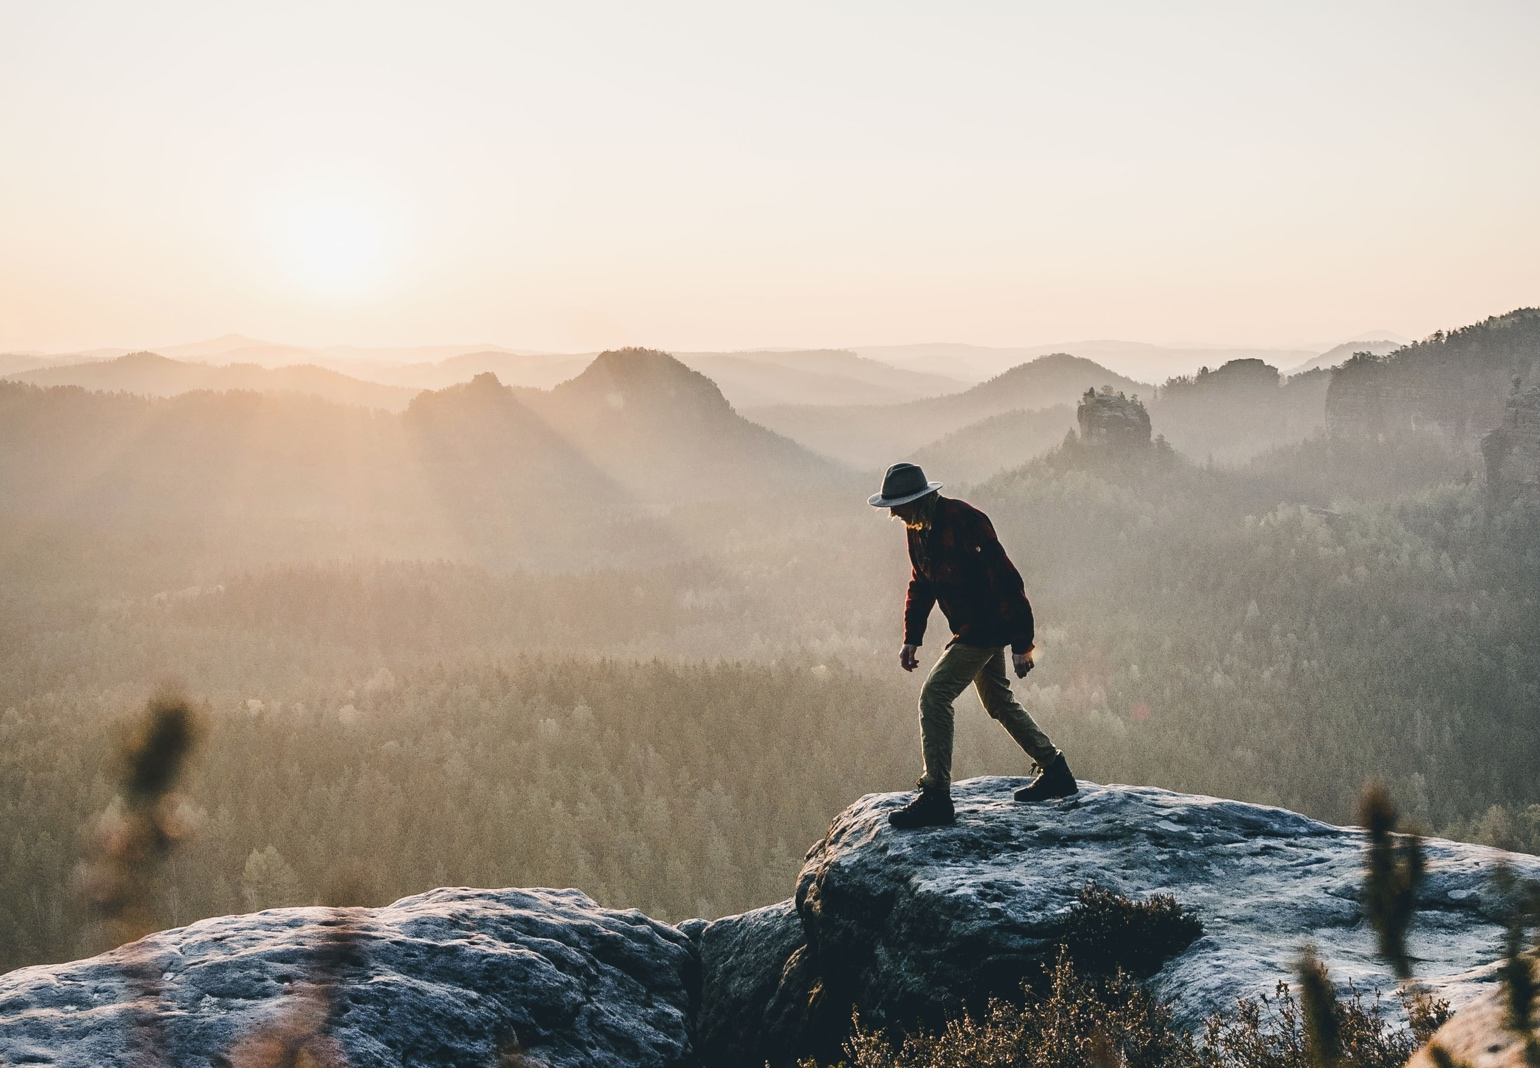 A person walking on a rock during sunrise.